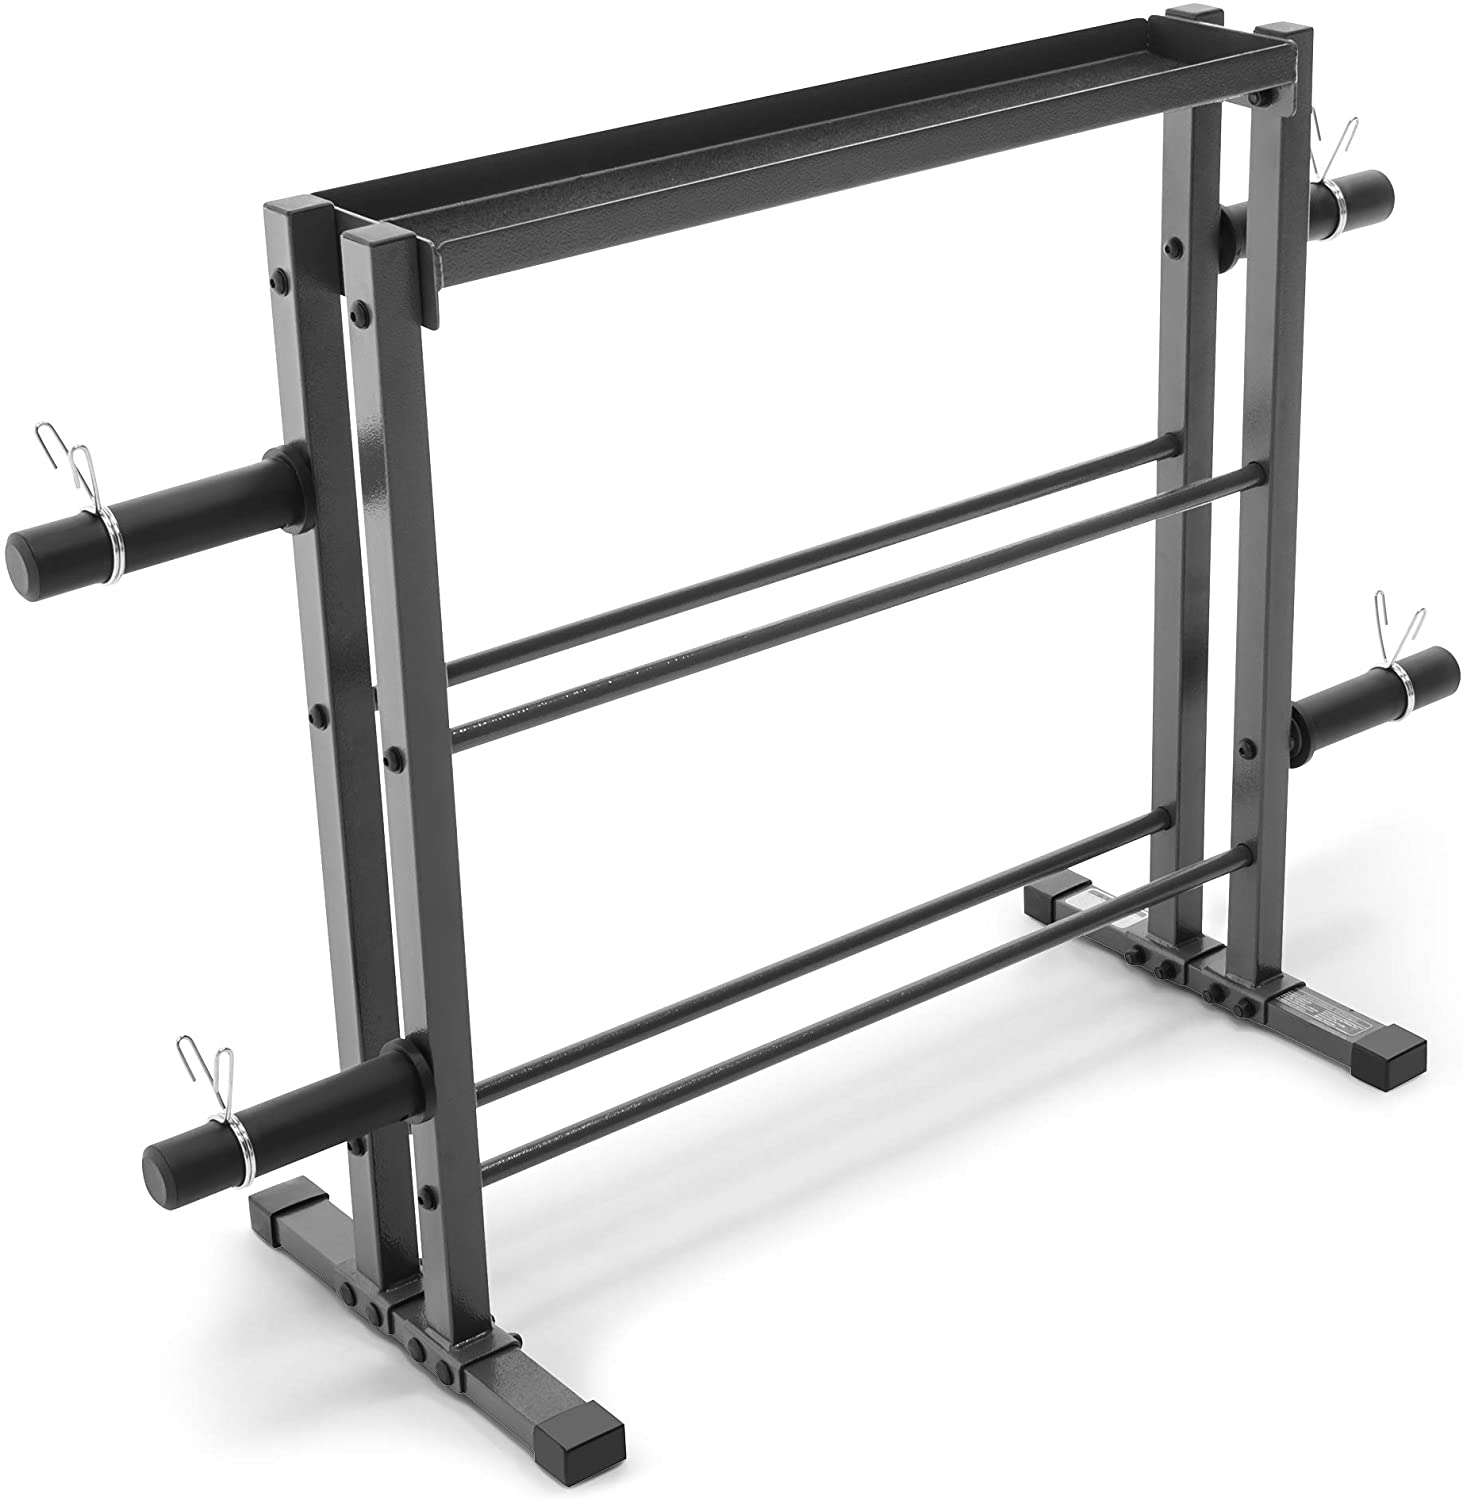 Marcy Combo Weights Storage Rack for Dumbbells, Kettlebells, and Weight Plates DBR-0117 : Sports & Outdoors